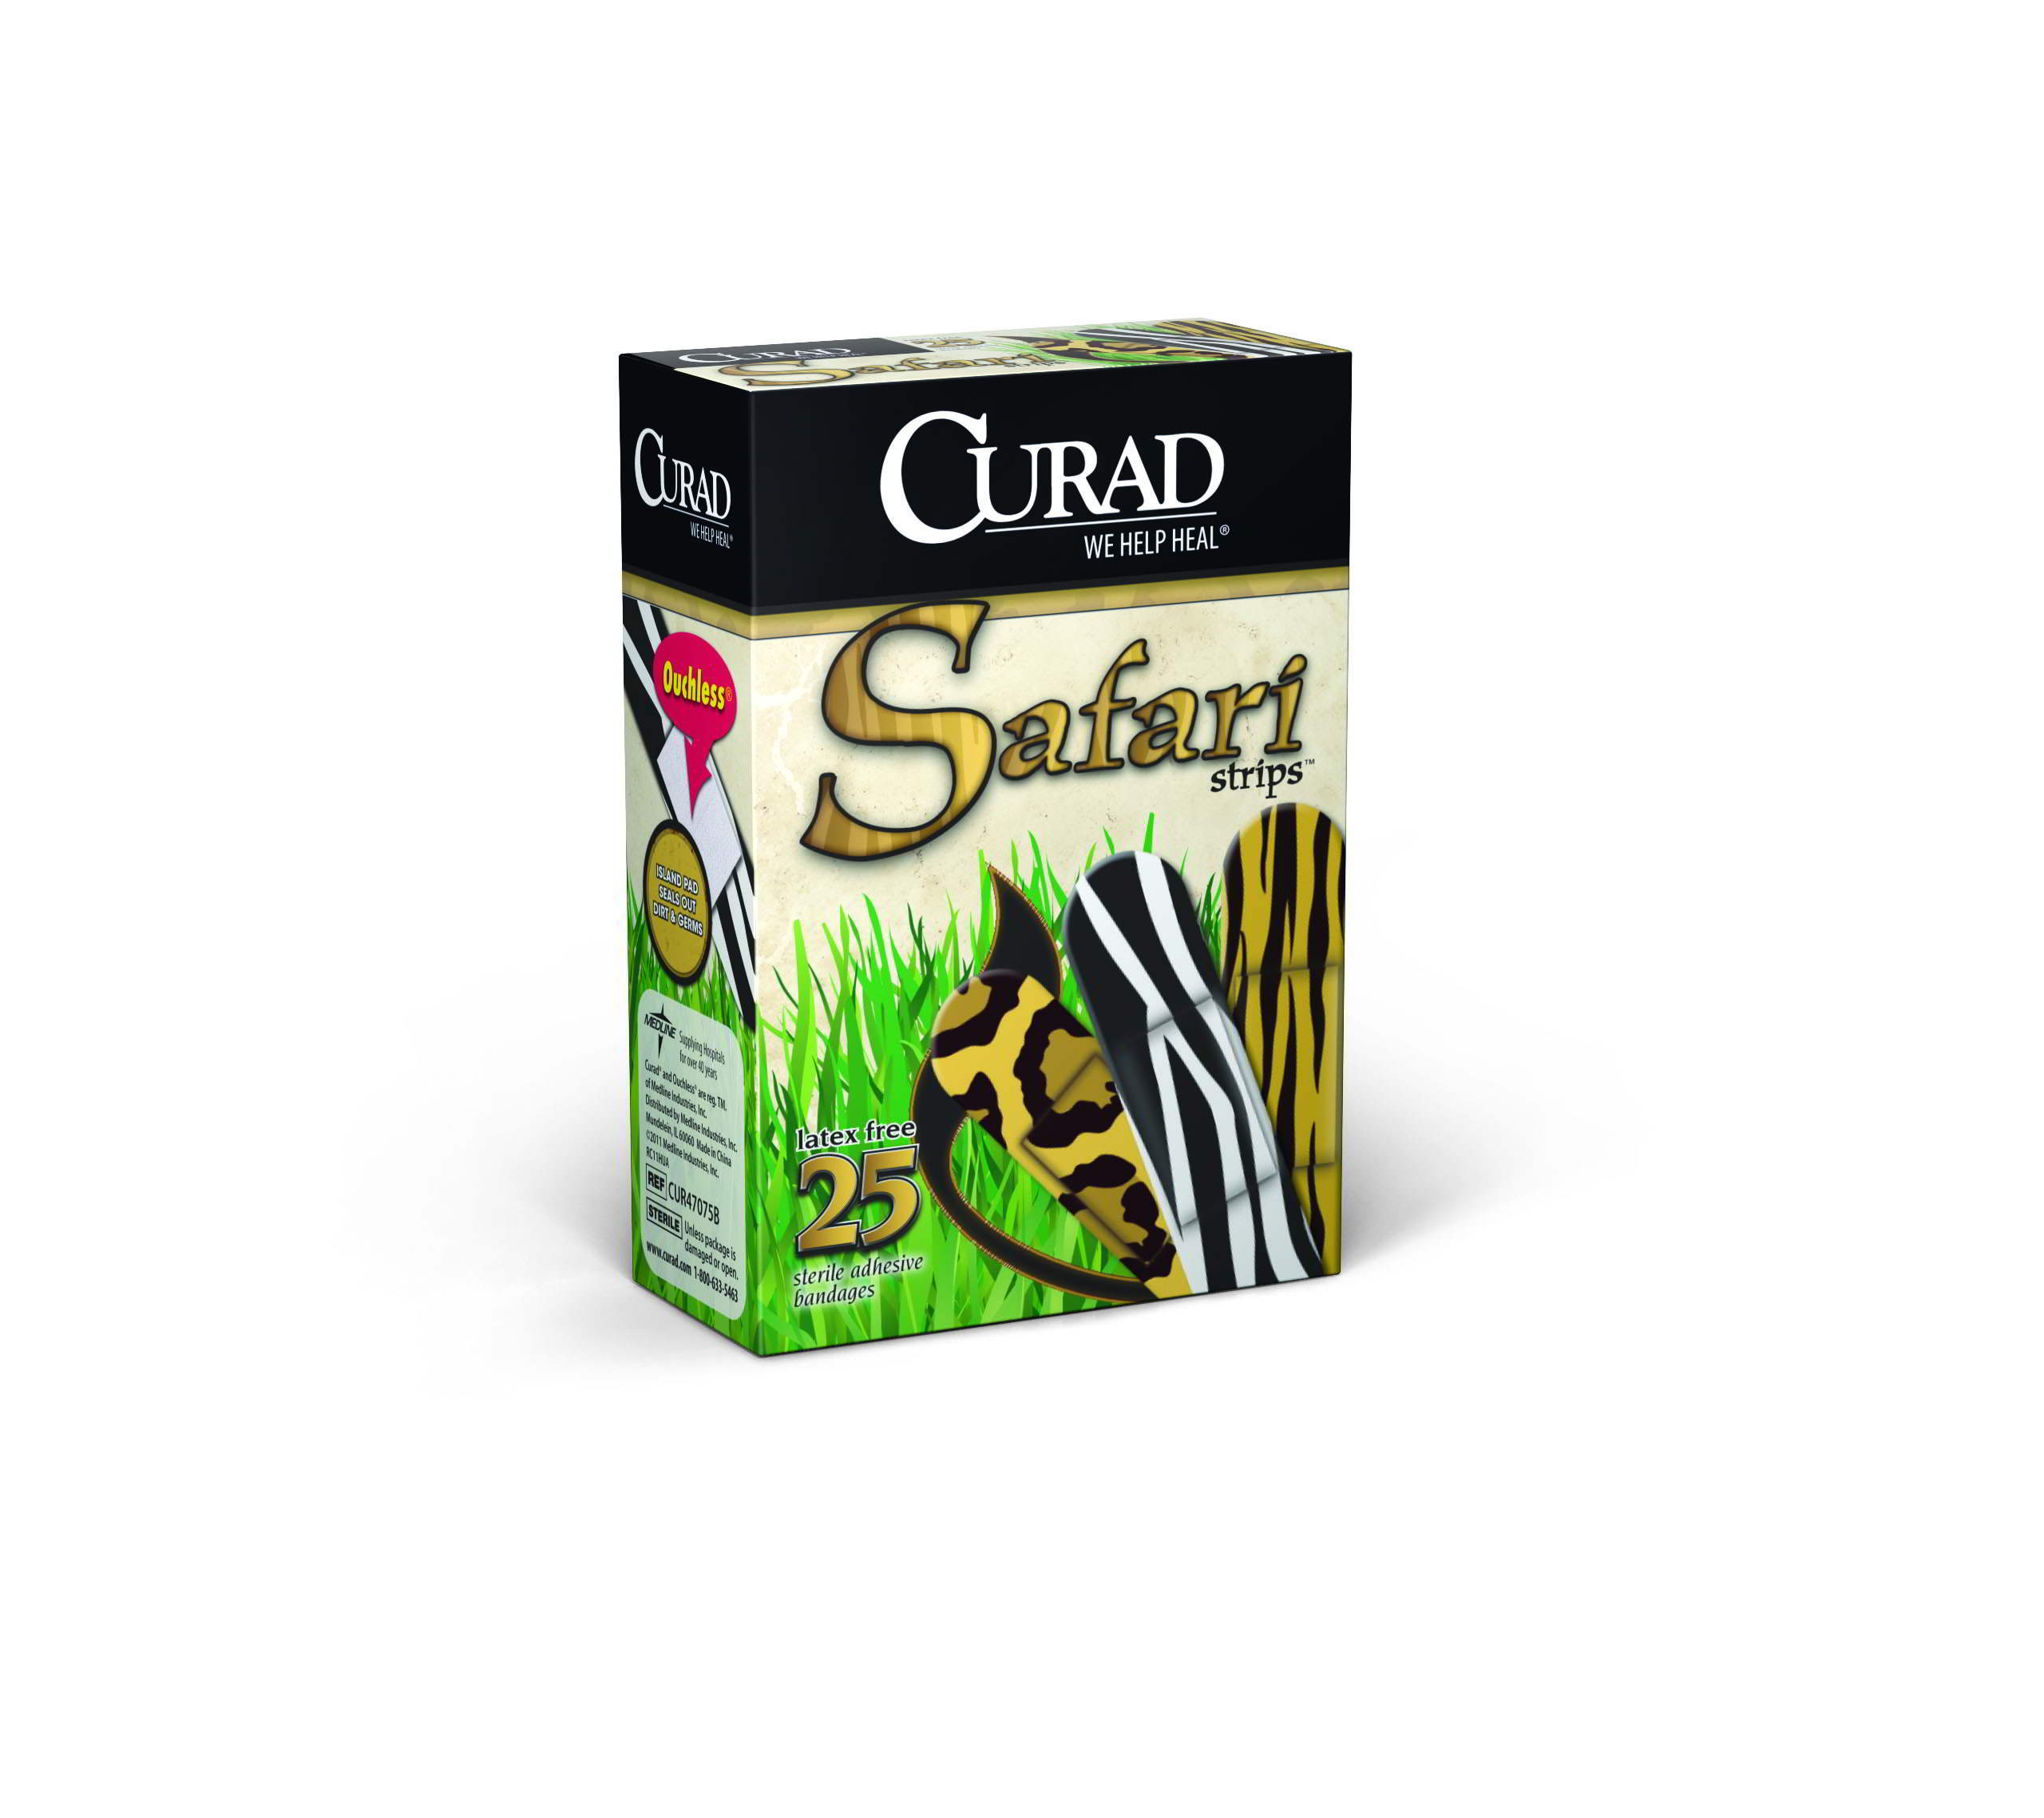 CURAD Safari Strips